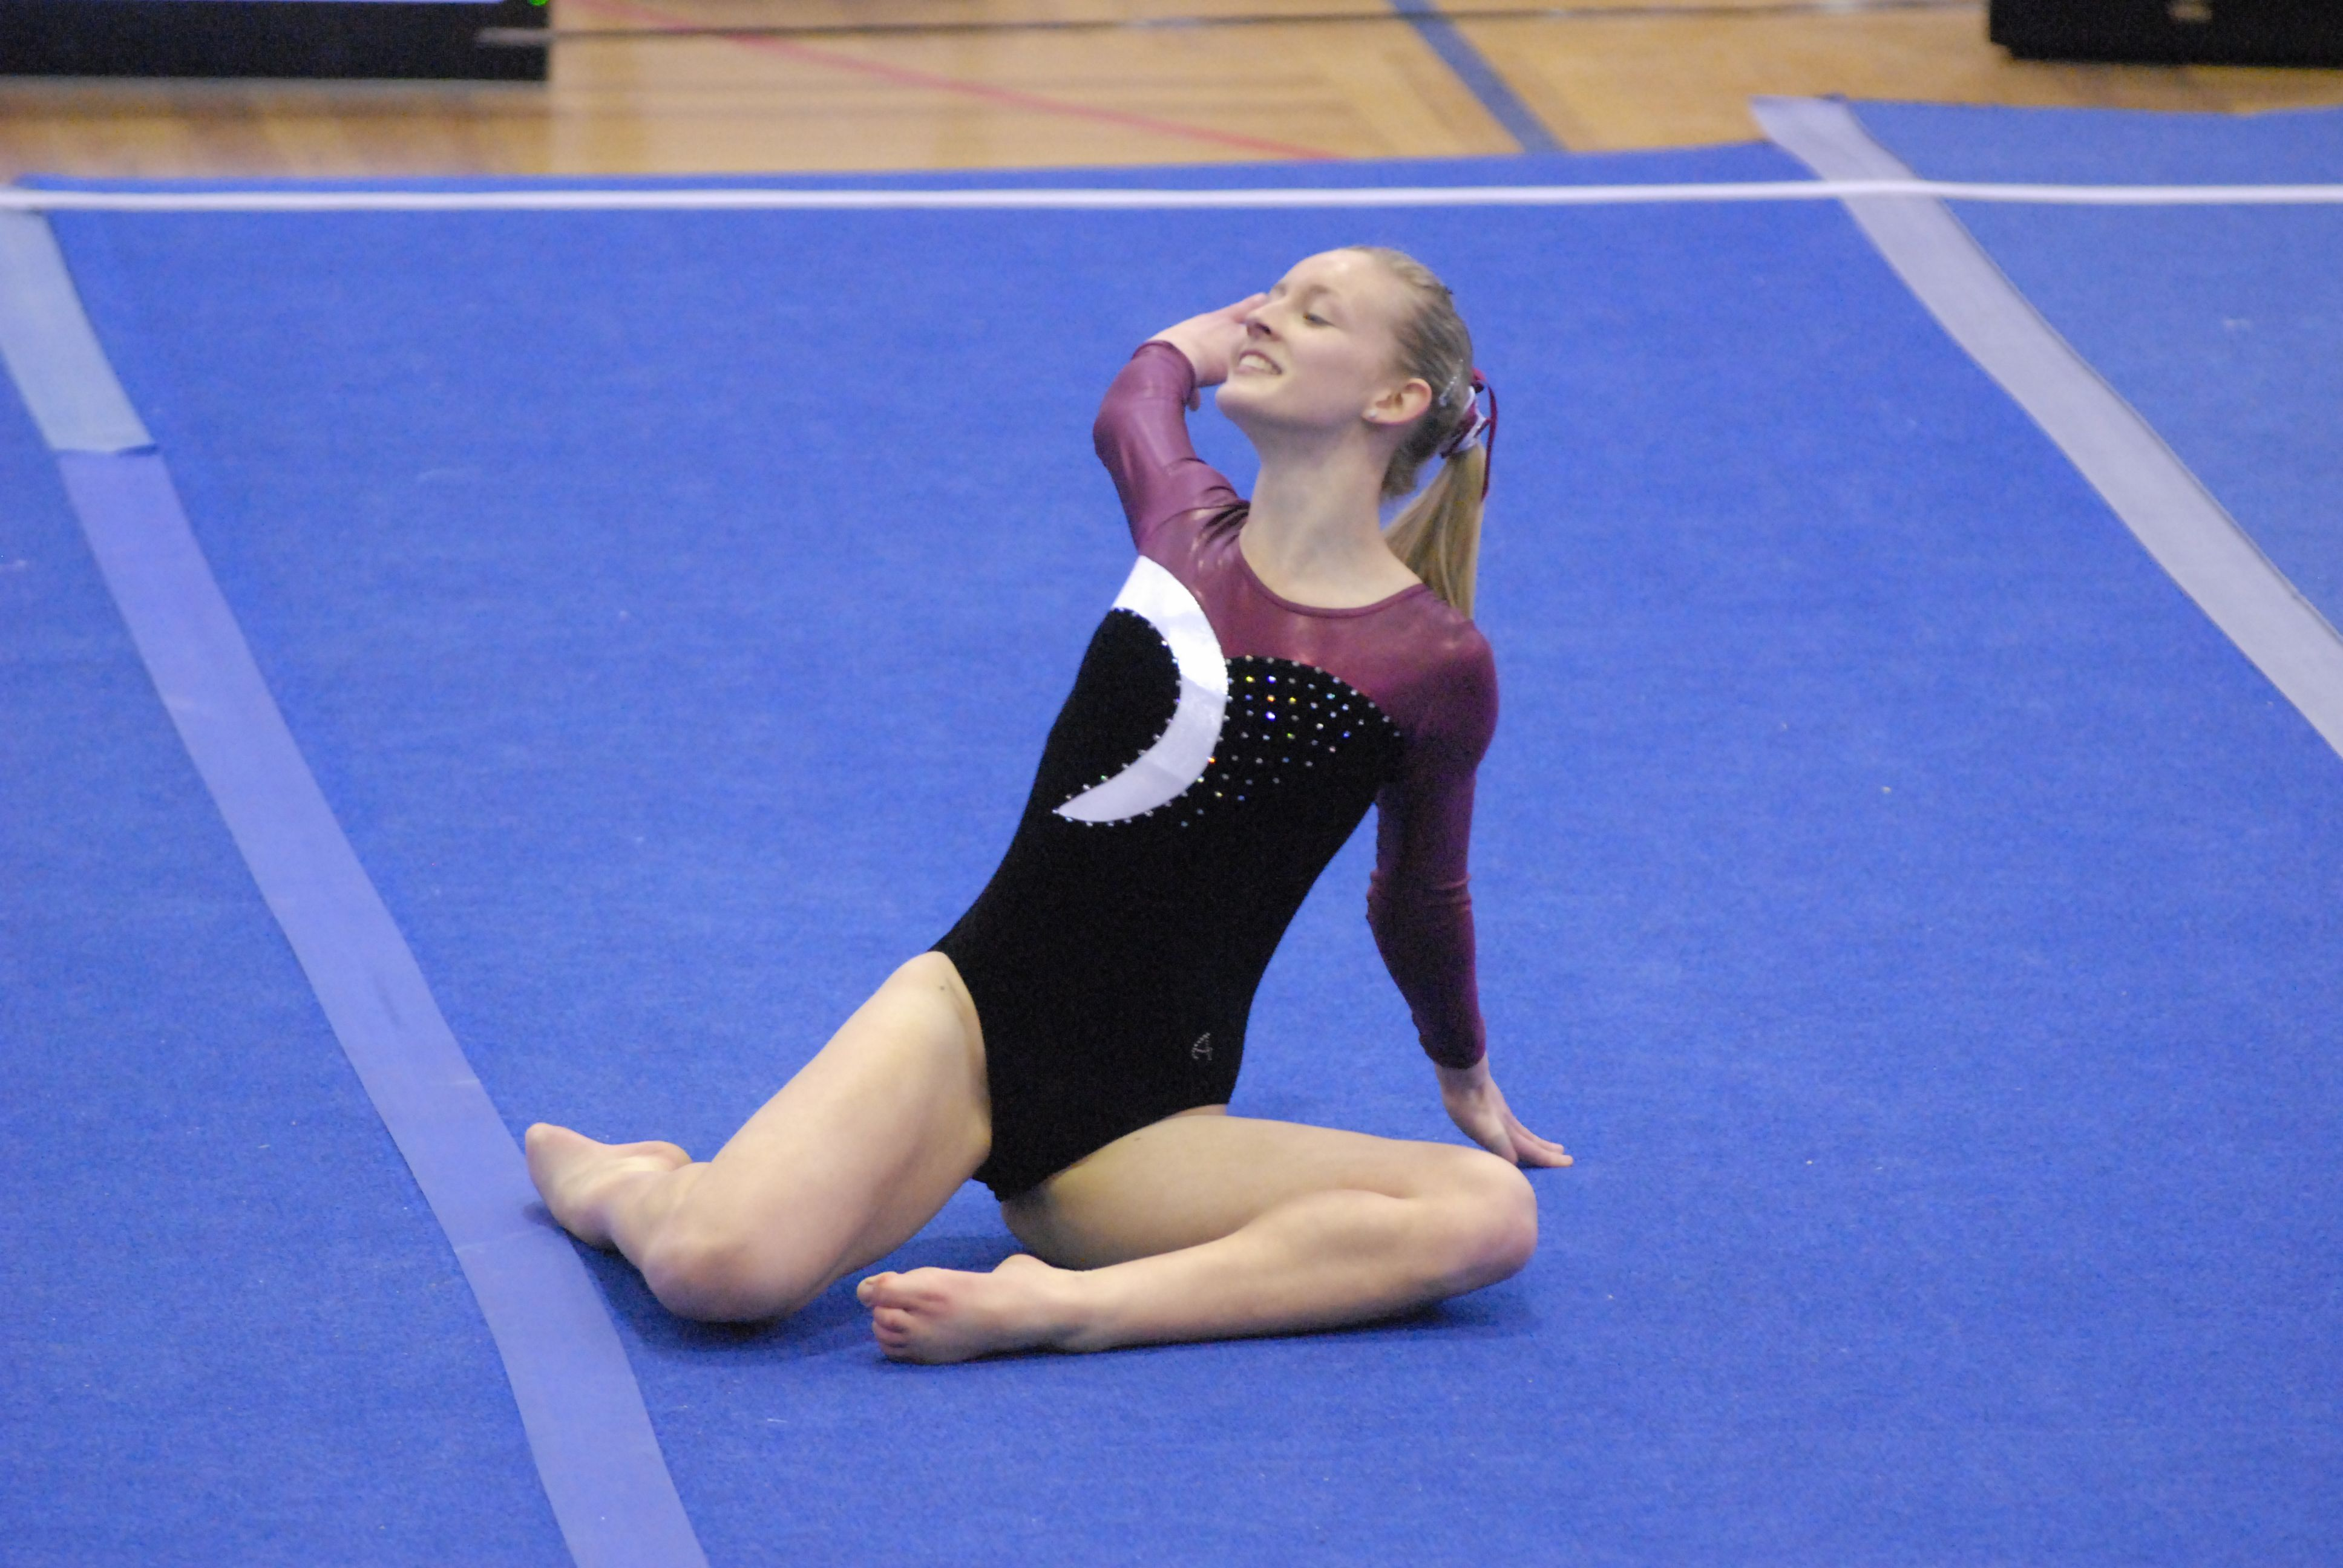 Graded at level 10, Liv is Tasmania's top ranked female gymnast.